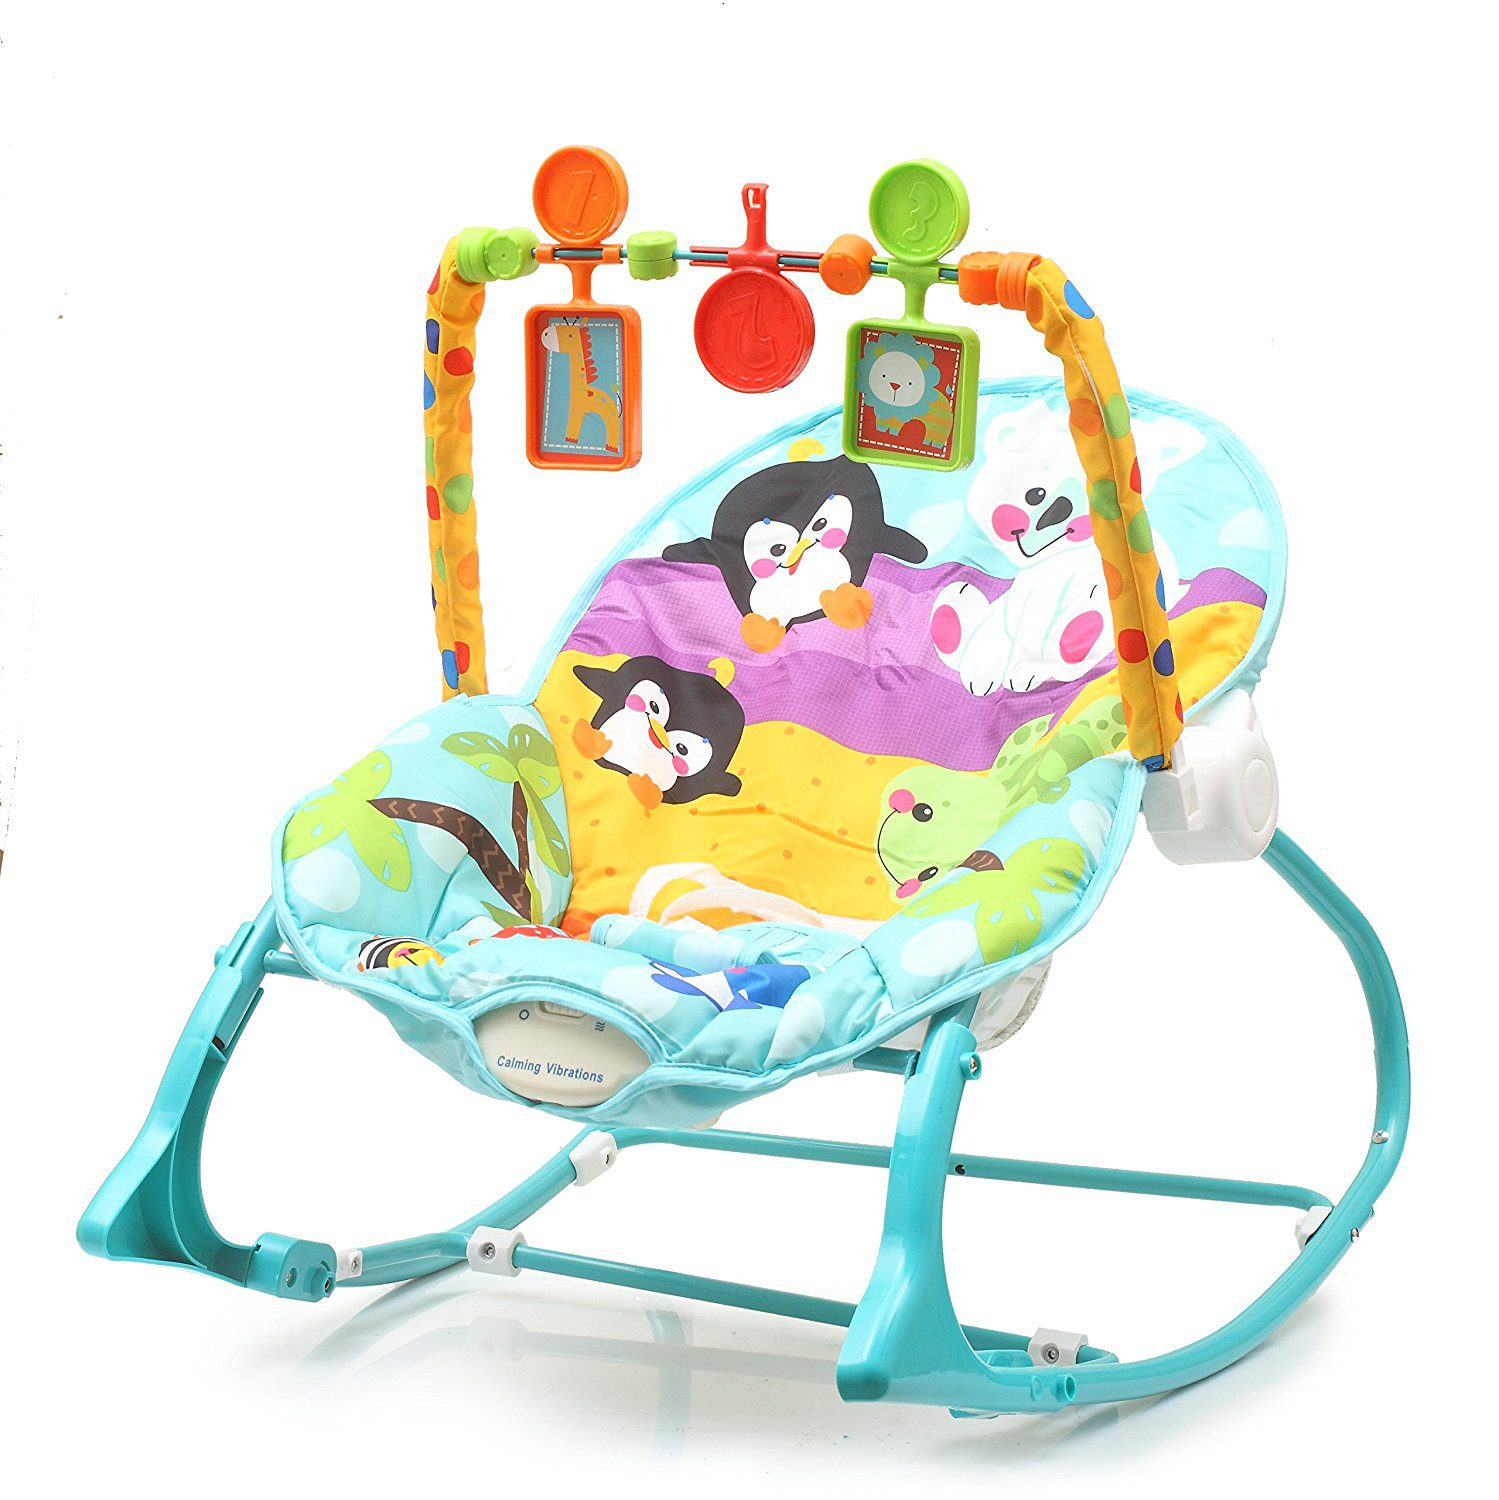 The-Flyers-Bay-Fiddle-Diddle-Baby-Bouncer-Cum-Rocker The 10 Best Baby Rocking Chairs in India Reviews & Price List 2018